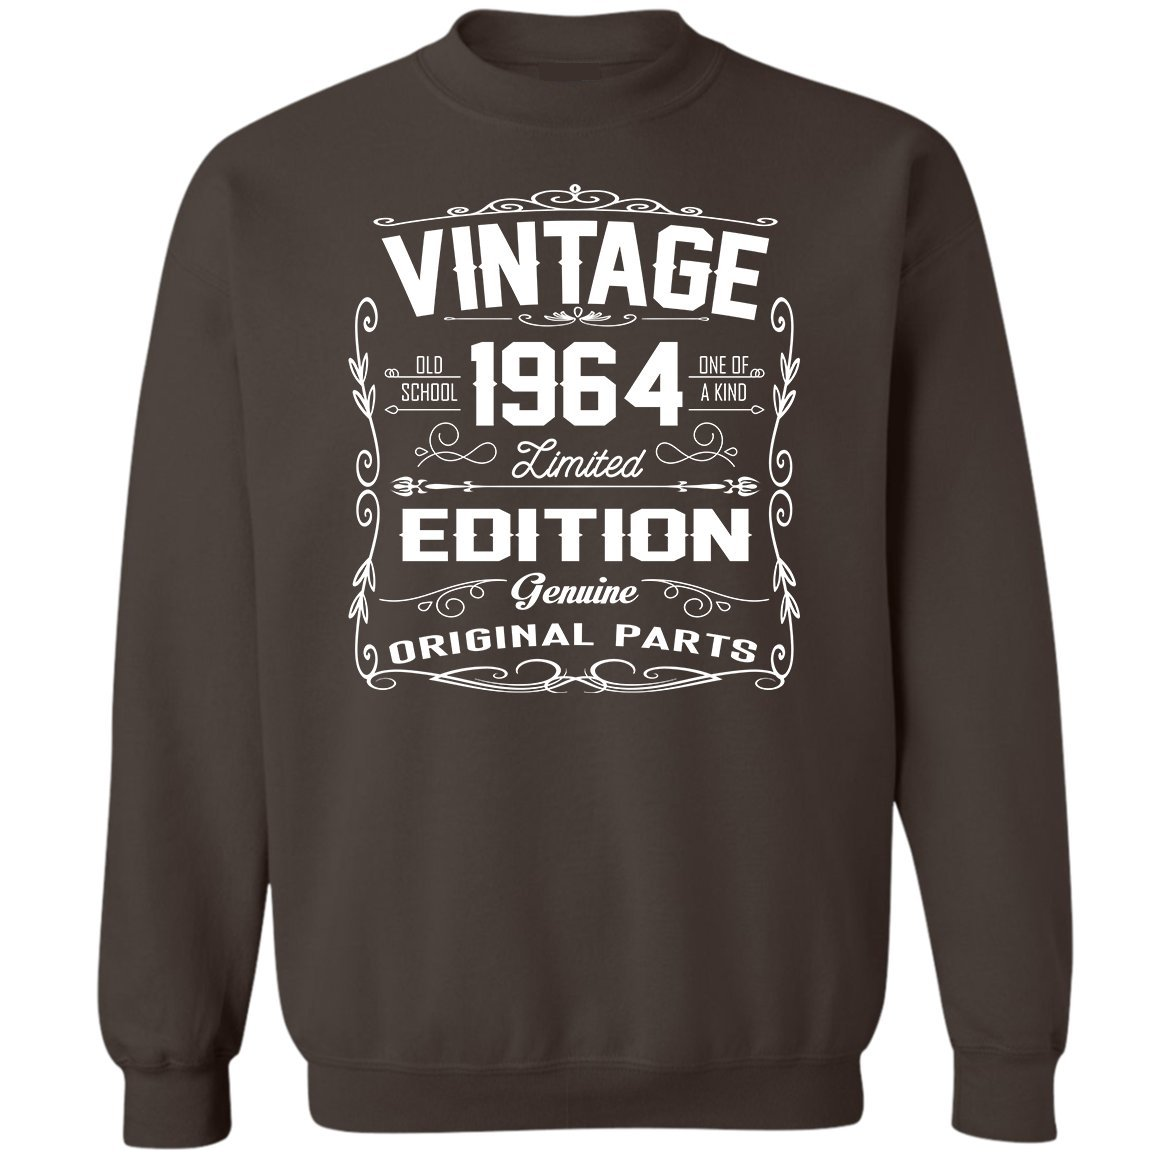 VADOBA Vintage 1964 Limited Edition Shirts Awesome Gifts For Birthday Sweatshirt